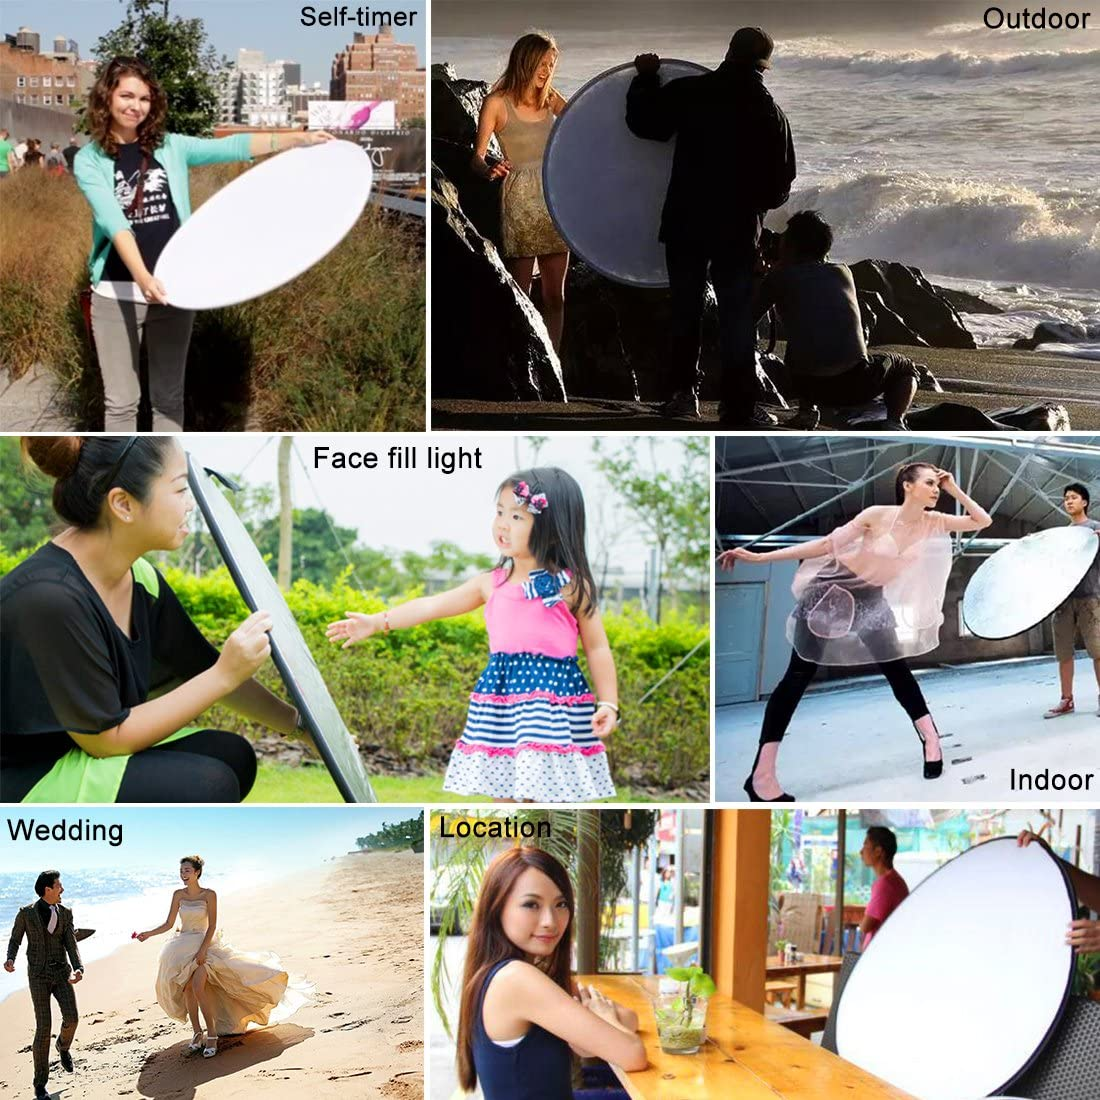 Yifant 5-in-1 110CM//43 Multi Foldable Reflector Board Photo Studio Backgrounds Panels Portable Folding Light Photography Reflector